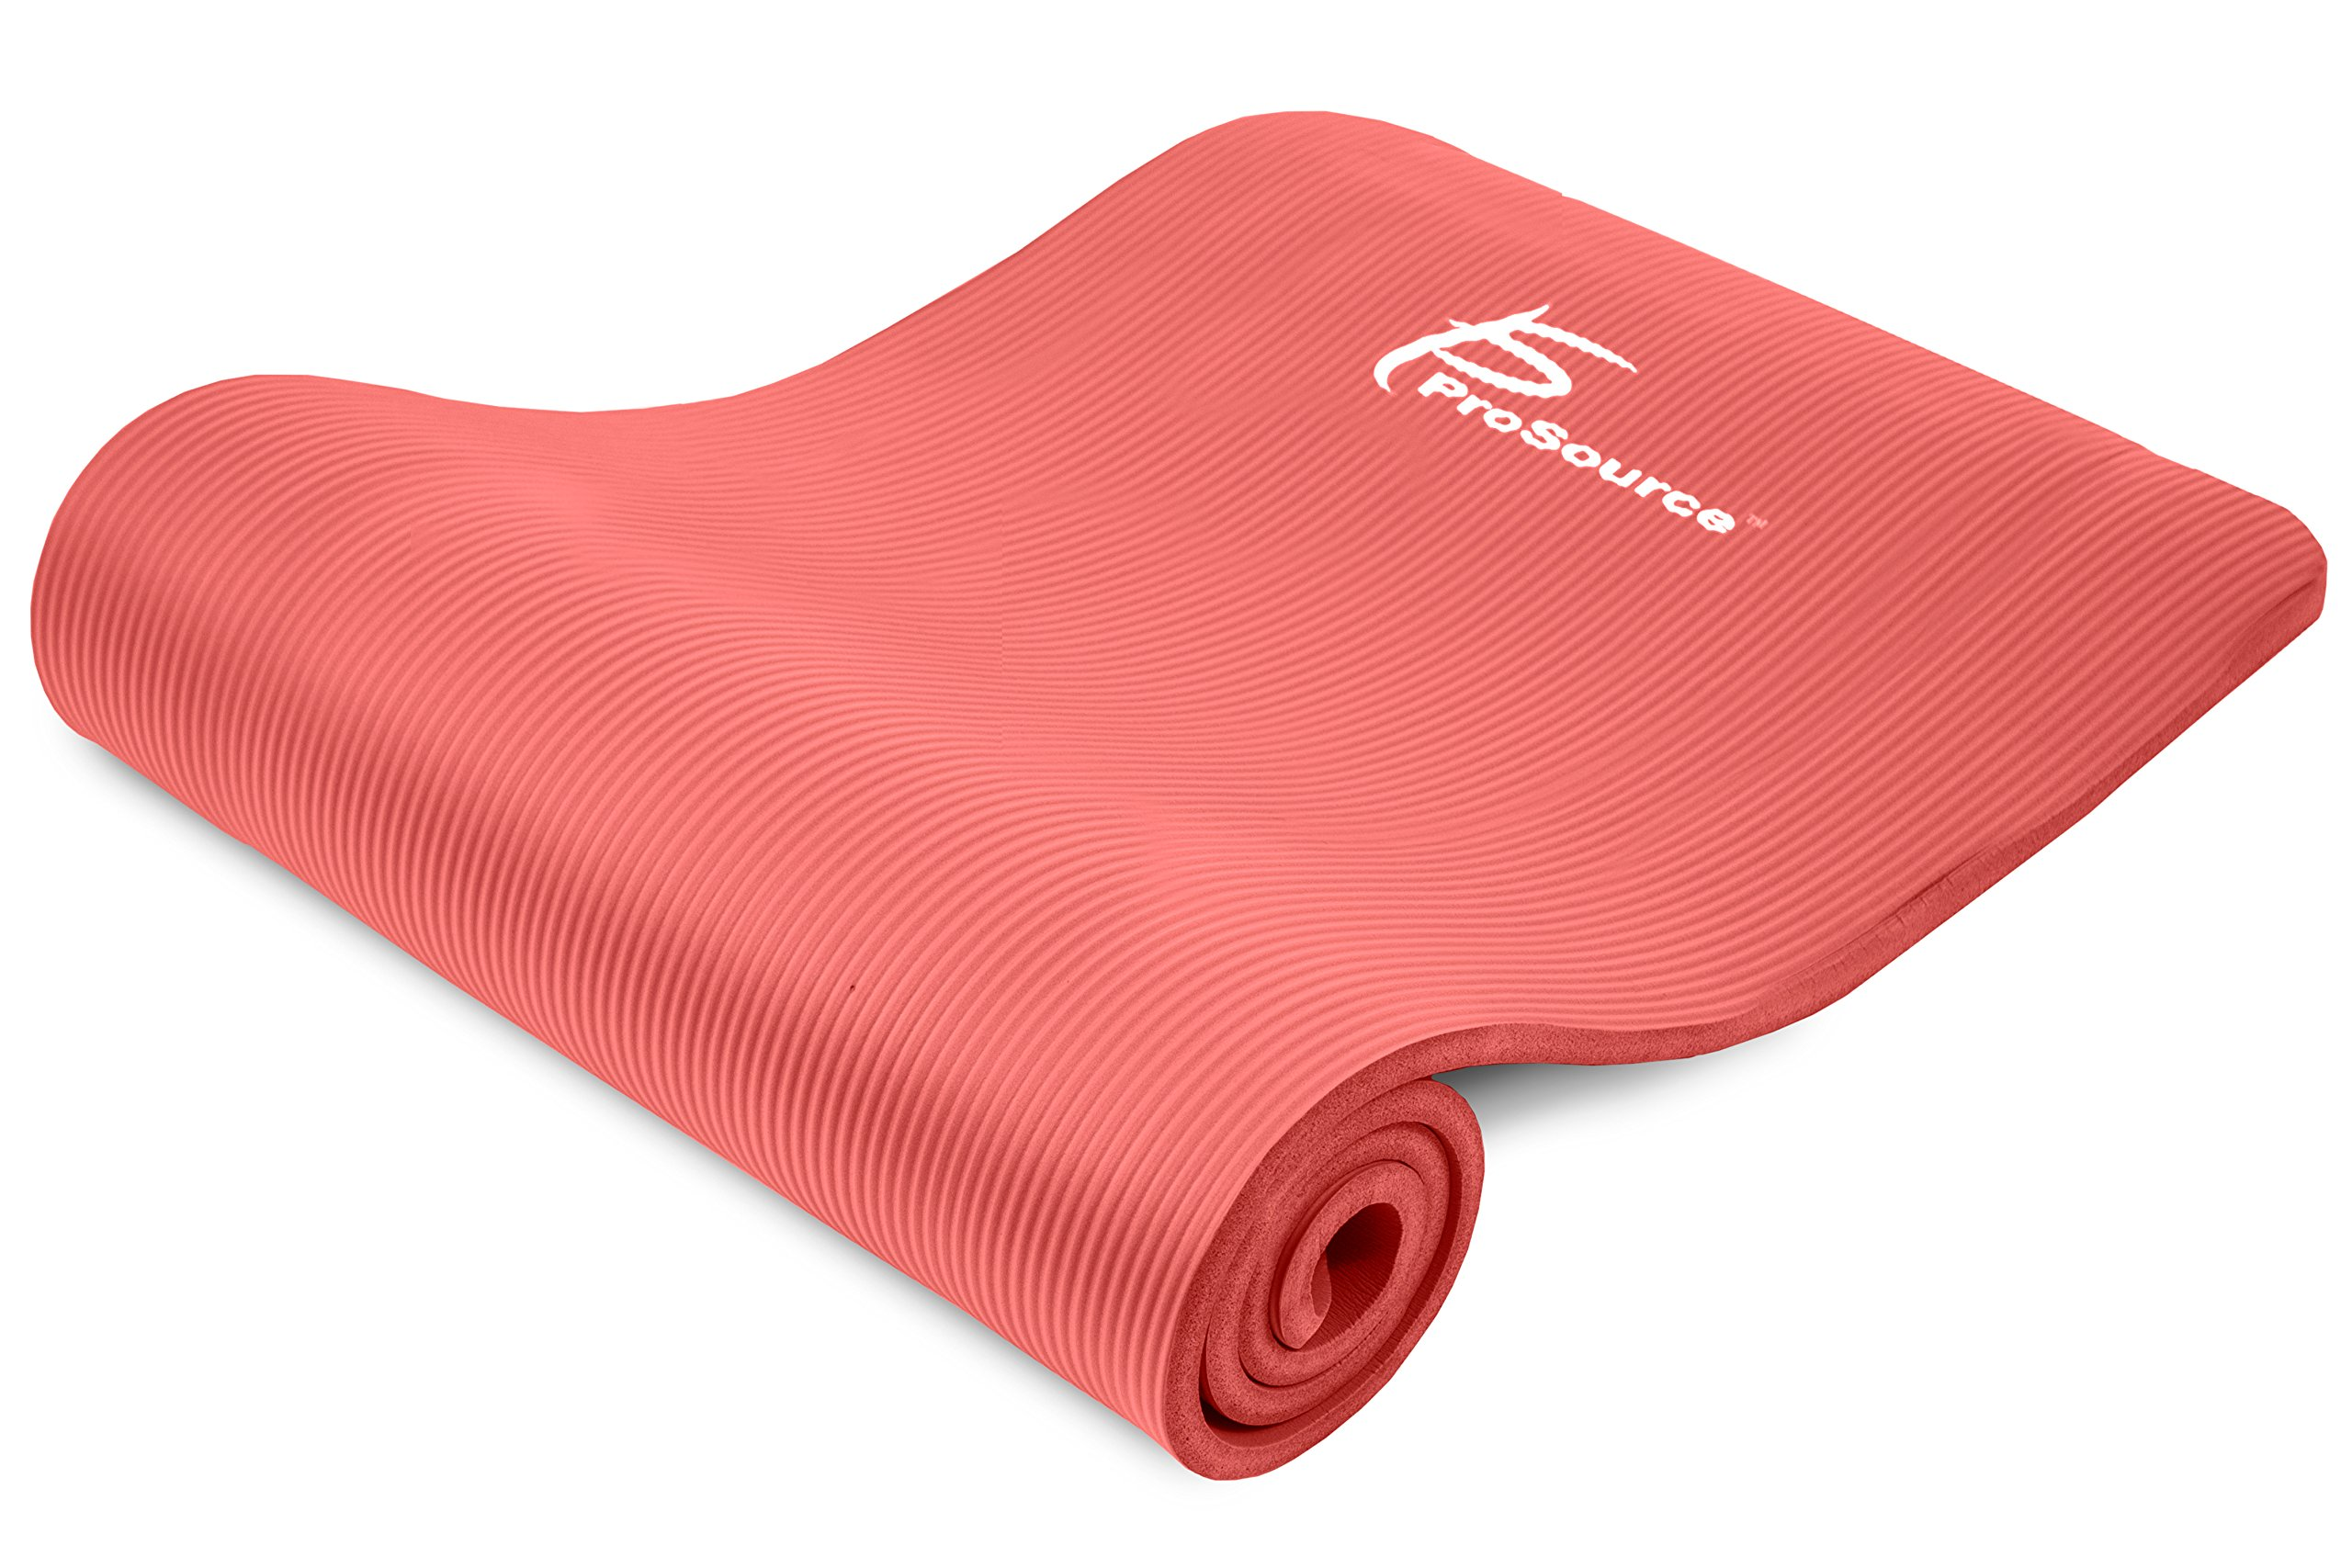 ProsourceFit Extra Thick Yoga and Pilates Mat ½'' (13mm), 71-inch Long High Density Exercise Mat with Comfort Foam and Carrying Strap, Red